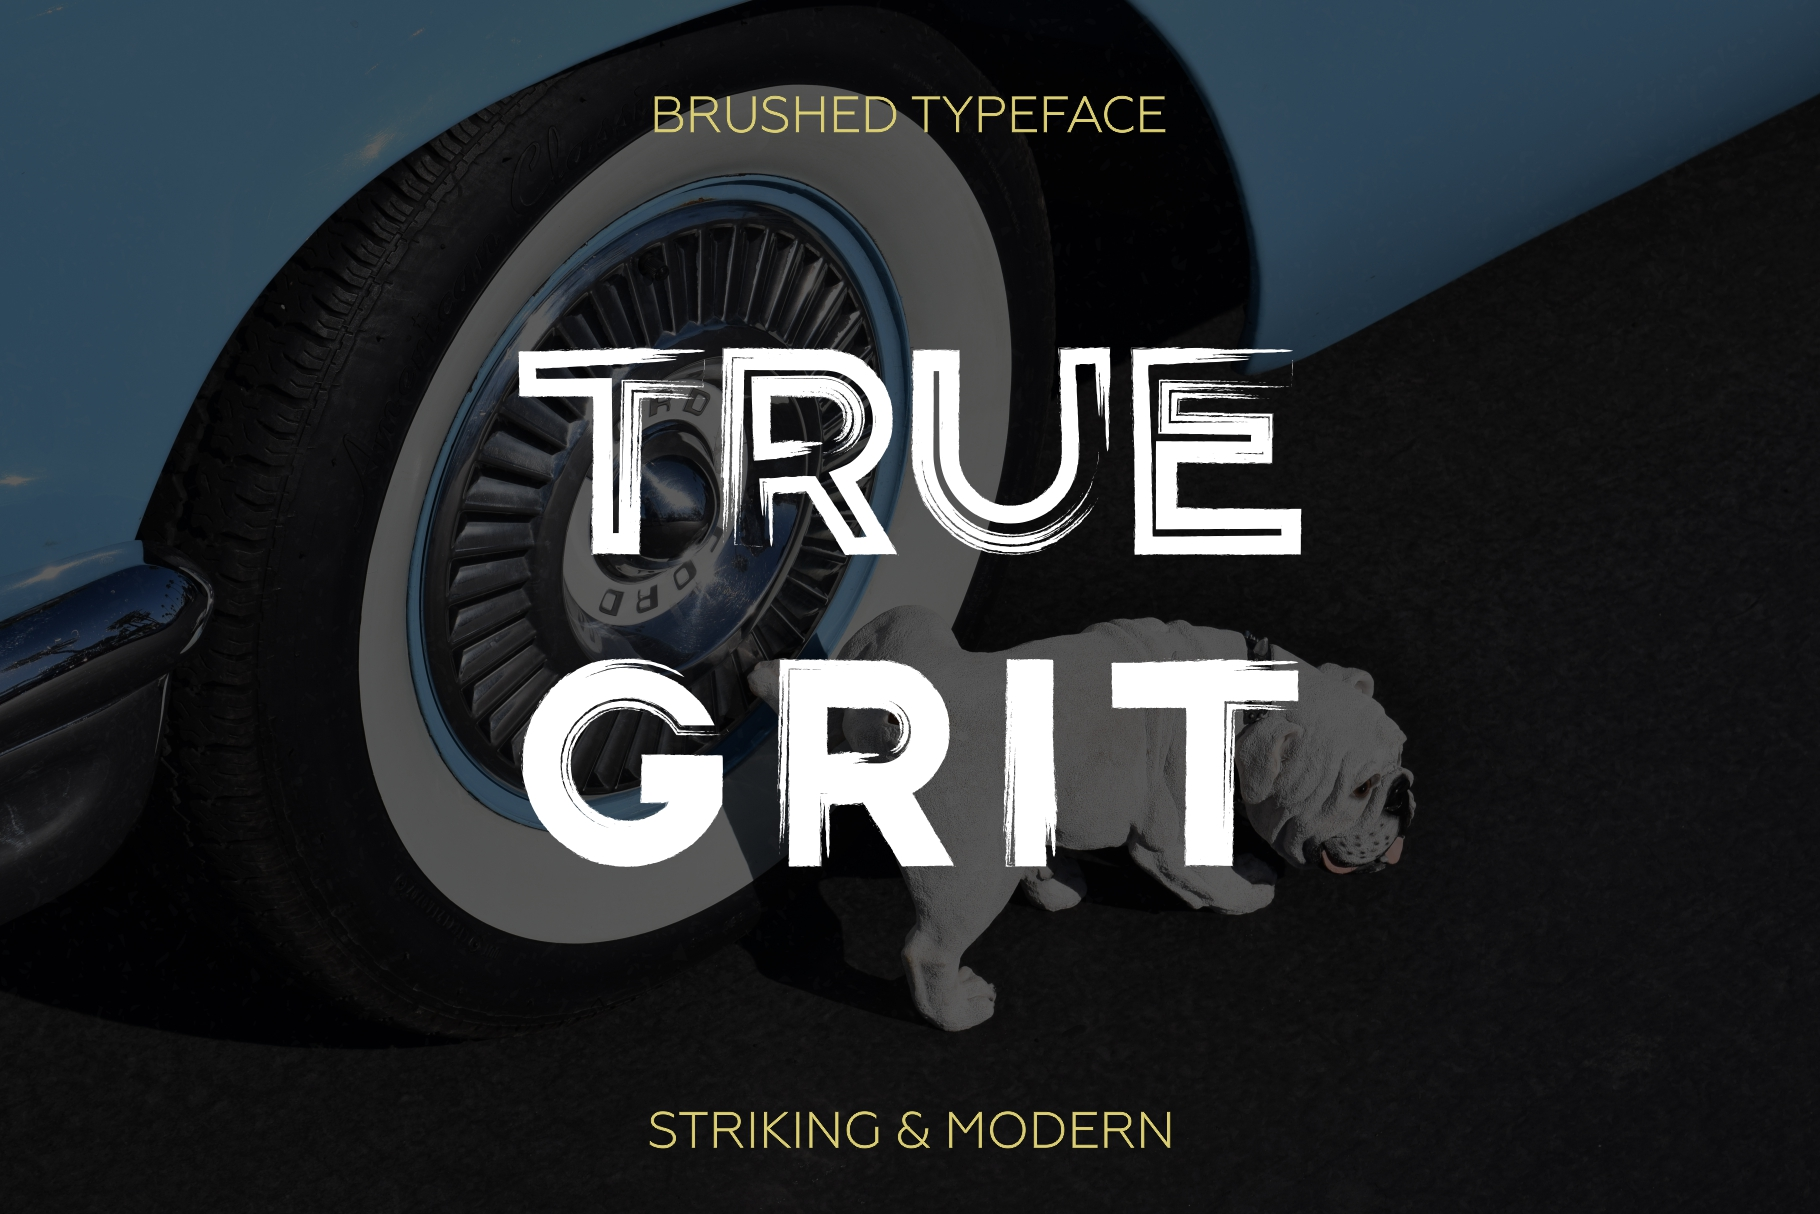 Gent. Display brushed typeface. Striking and modern. example image 3